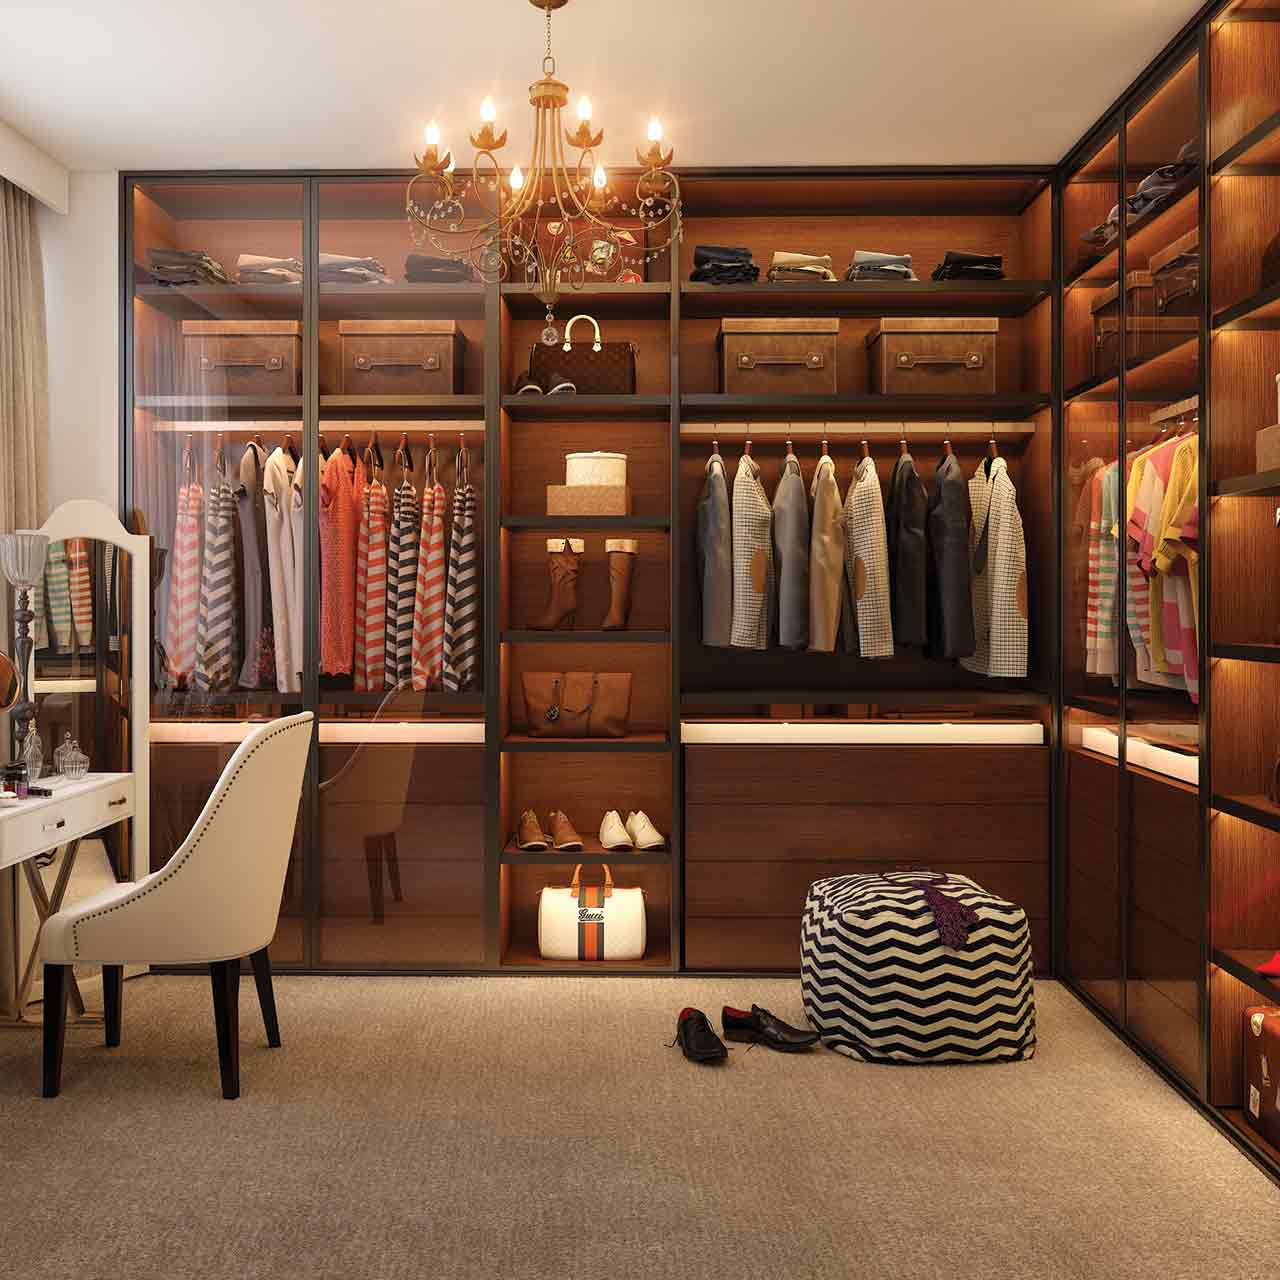 Making Practical Choices for Interior Material